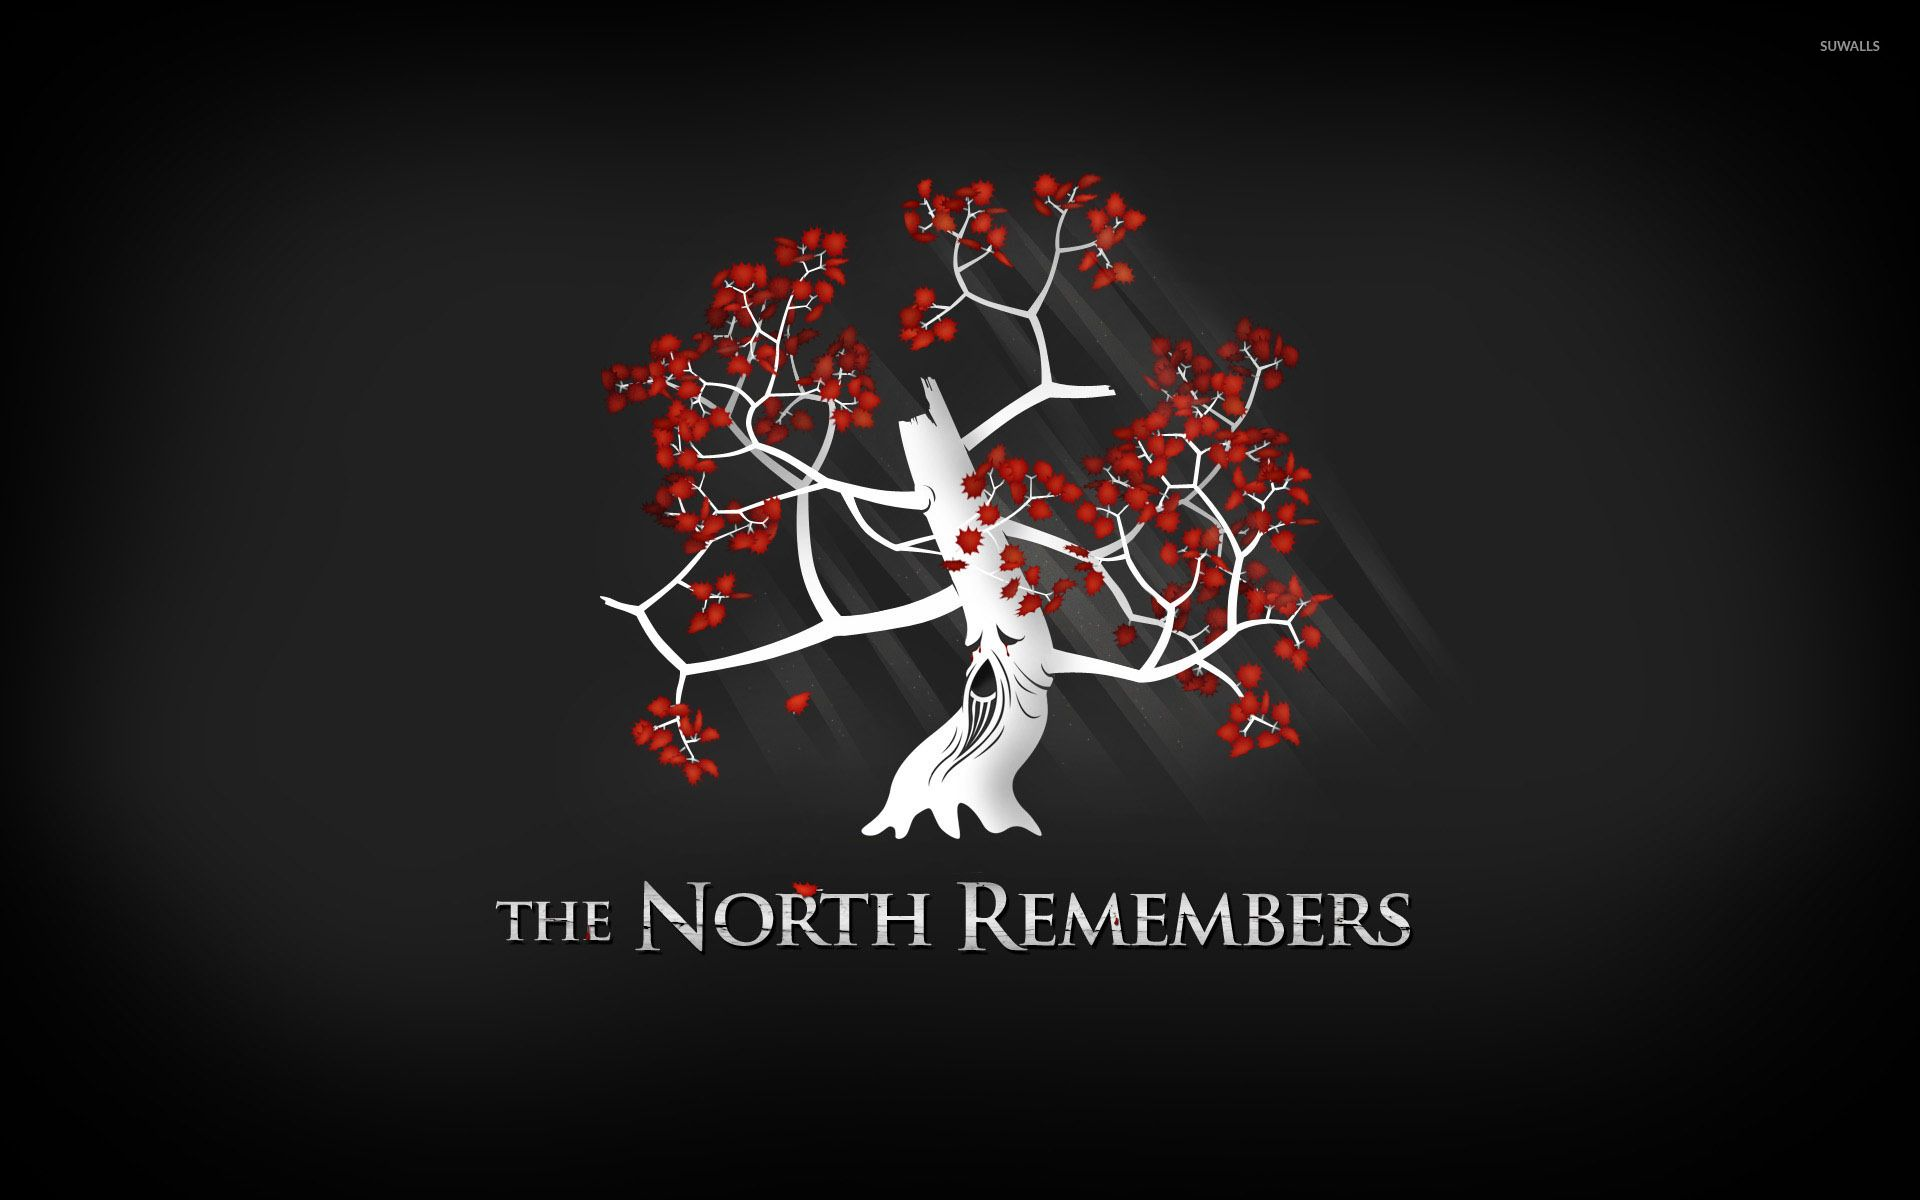 The North Remembers Wallpaper  Game of thrones 1920x1200